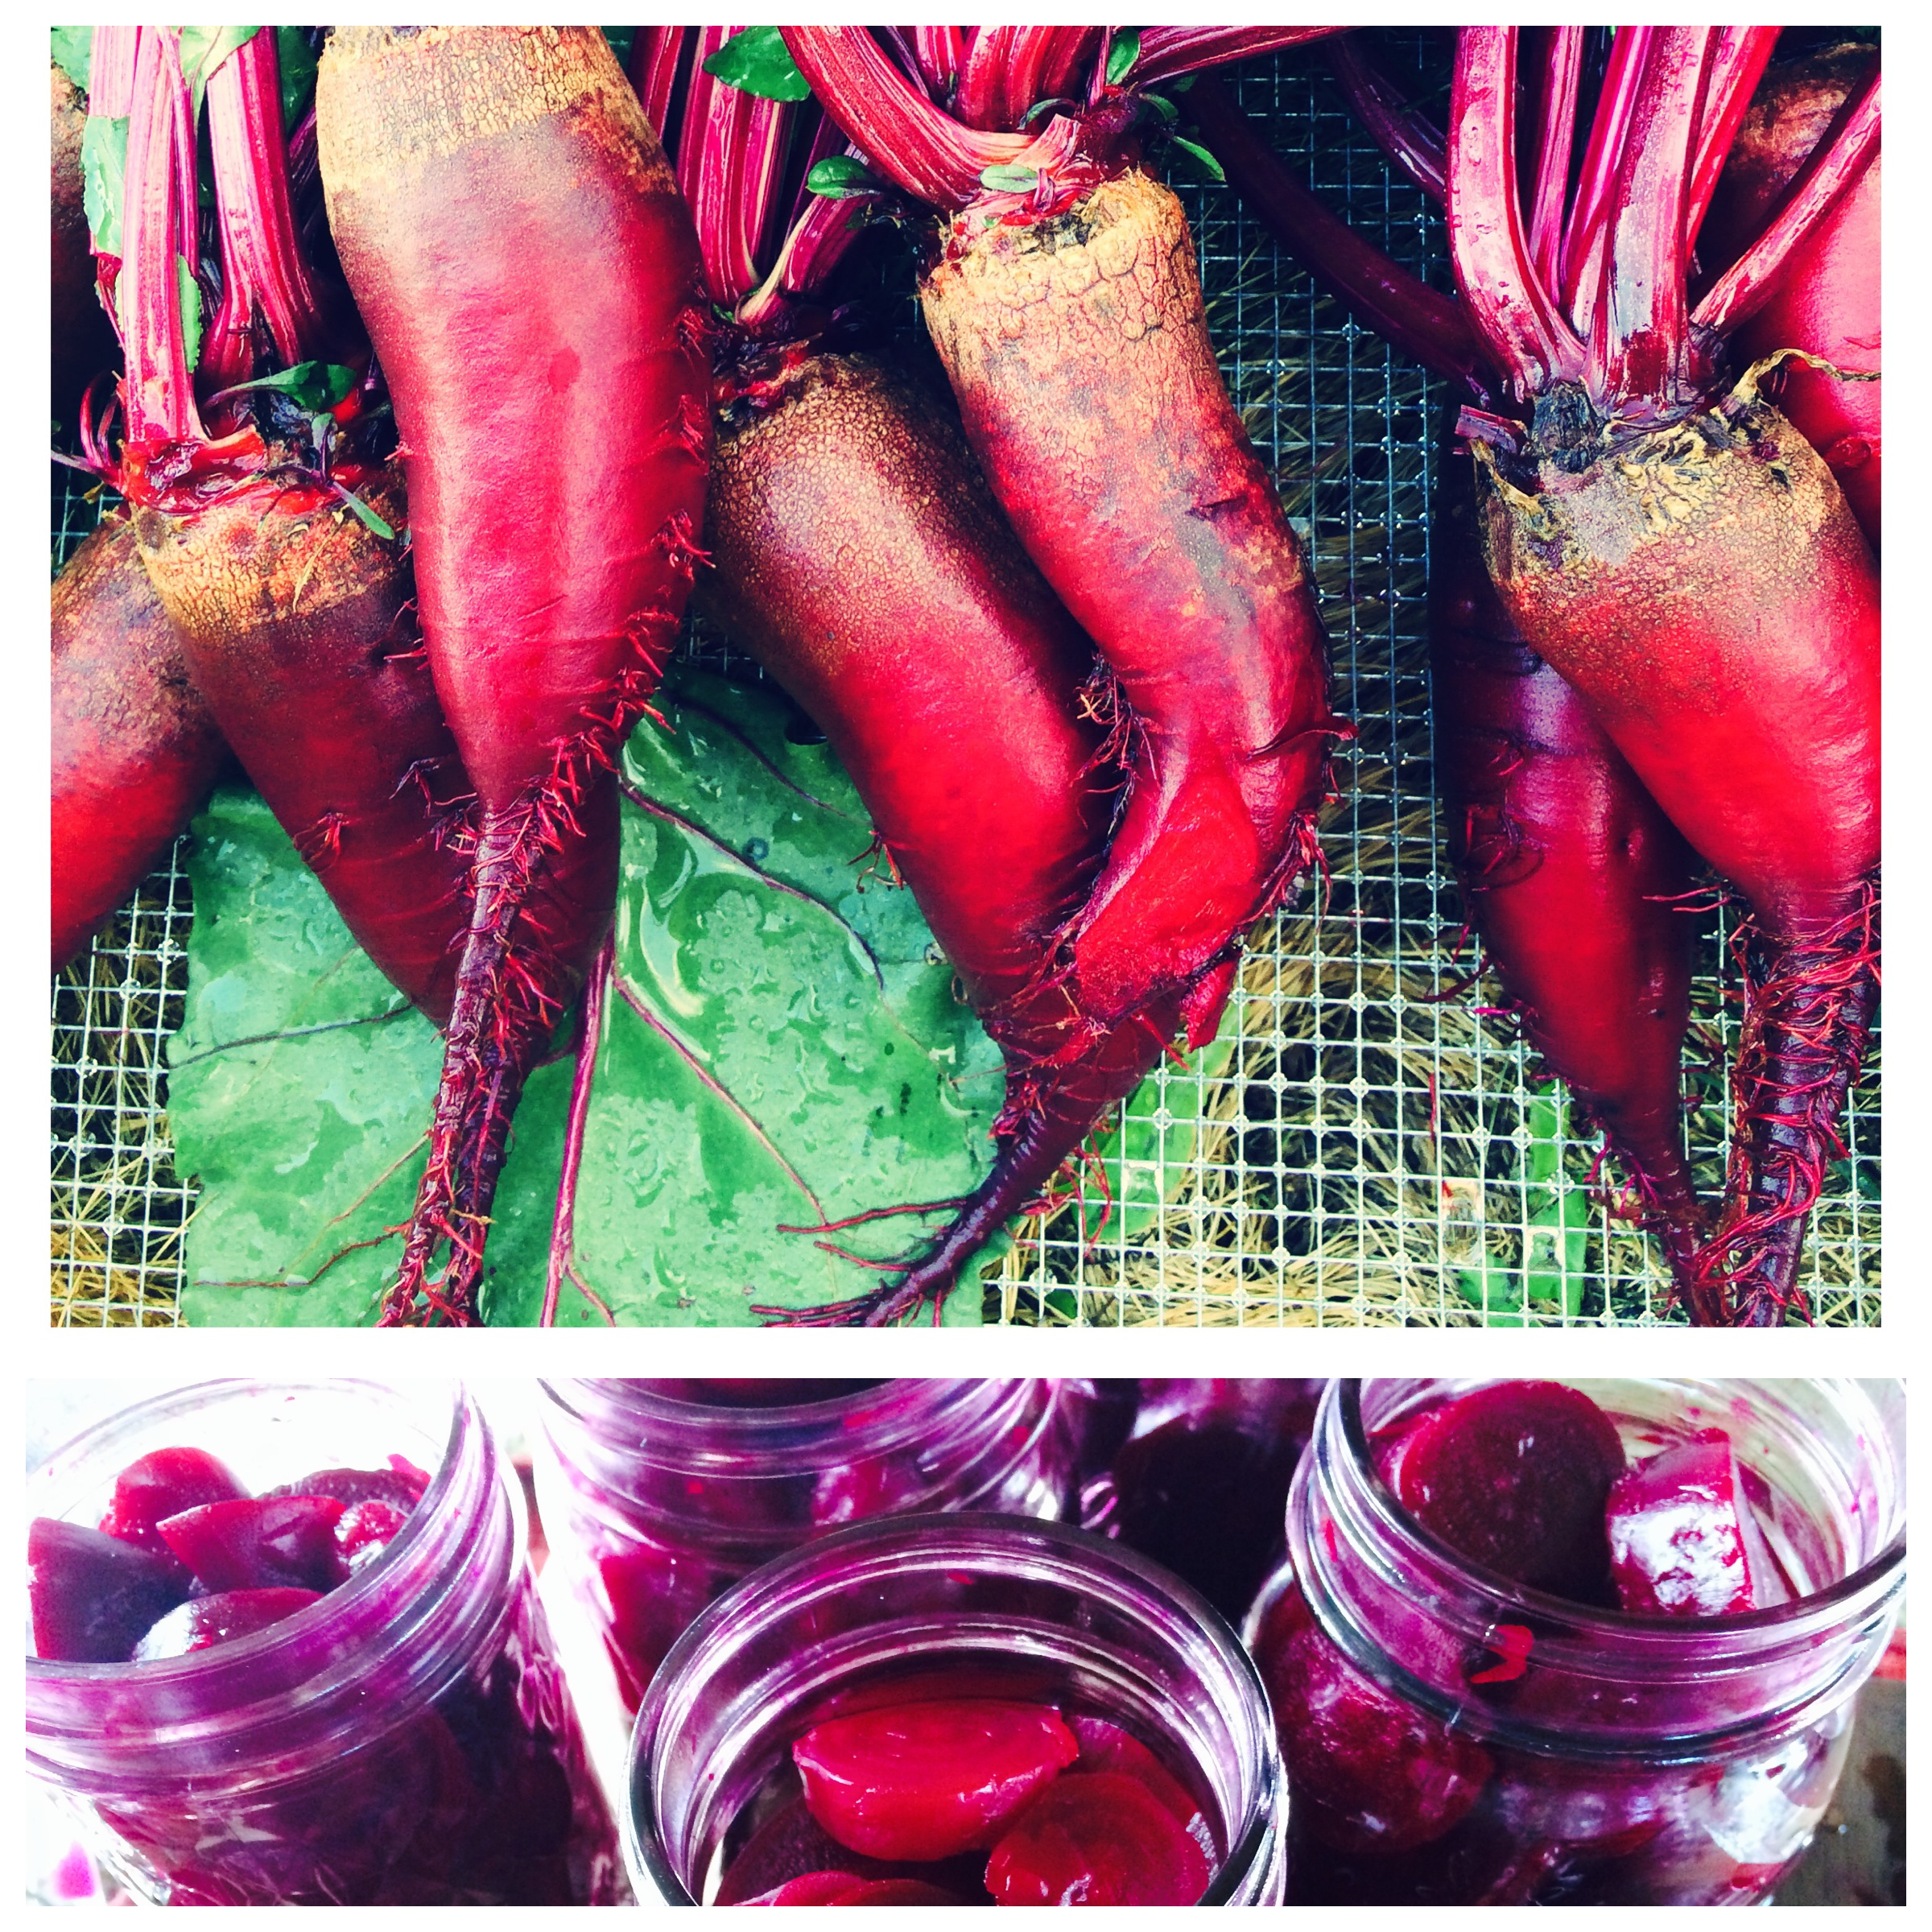 Sweet Apple Cider Pickled Beets